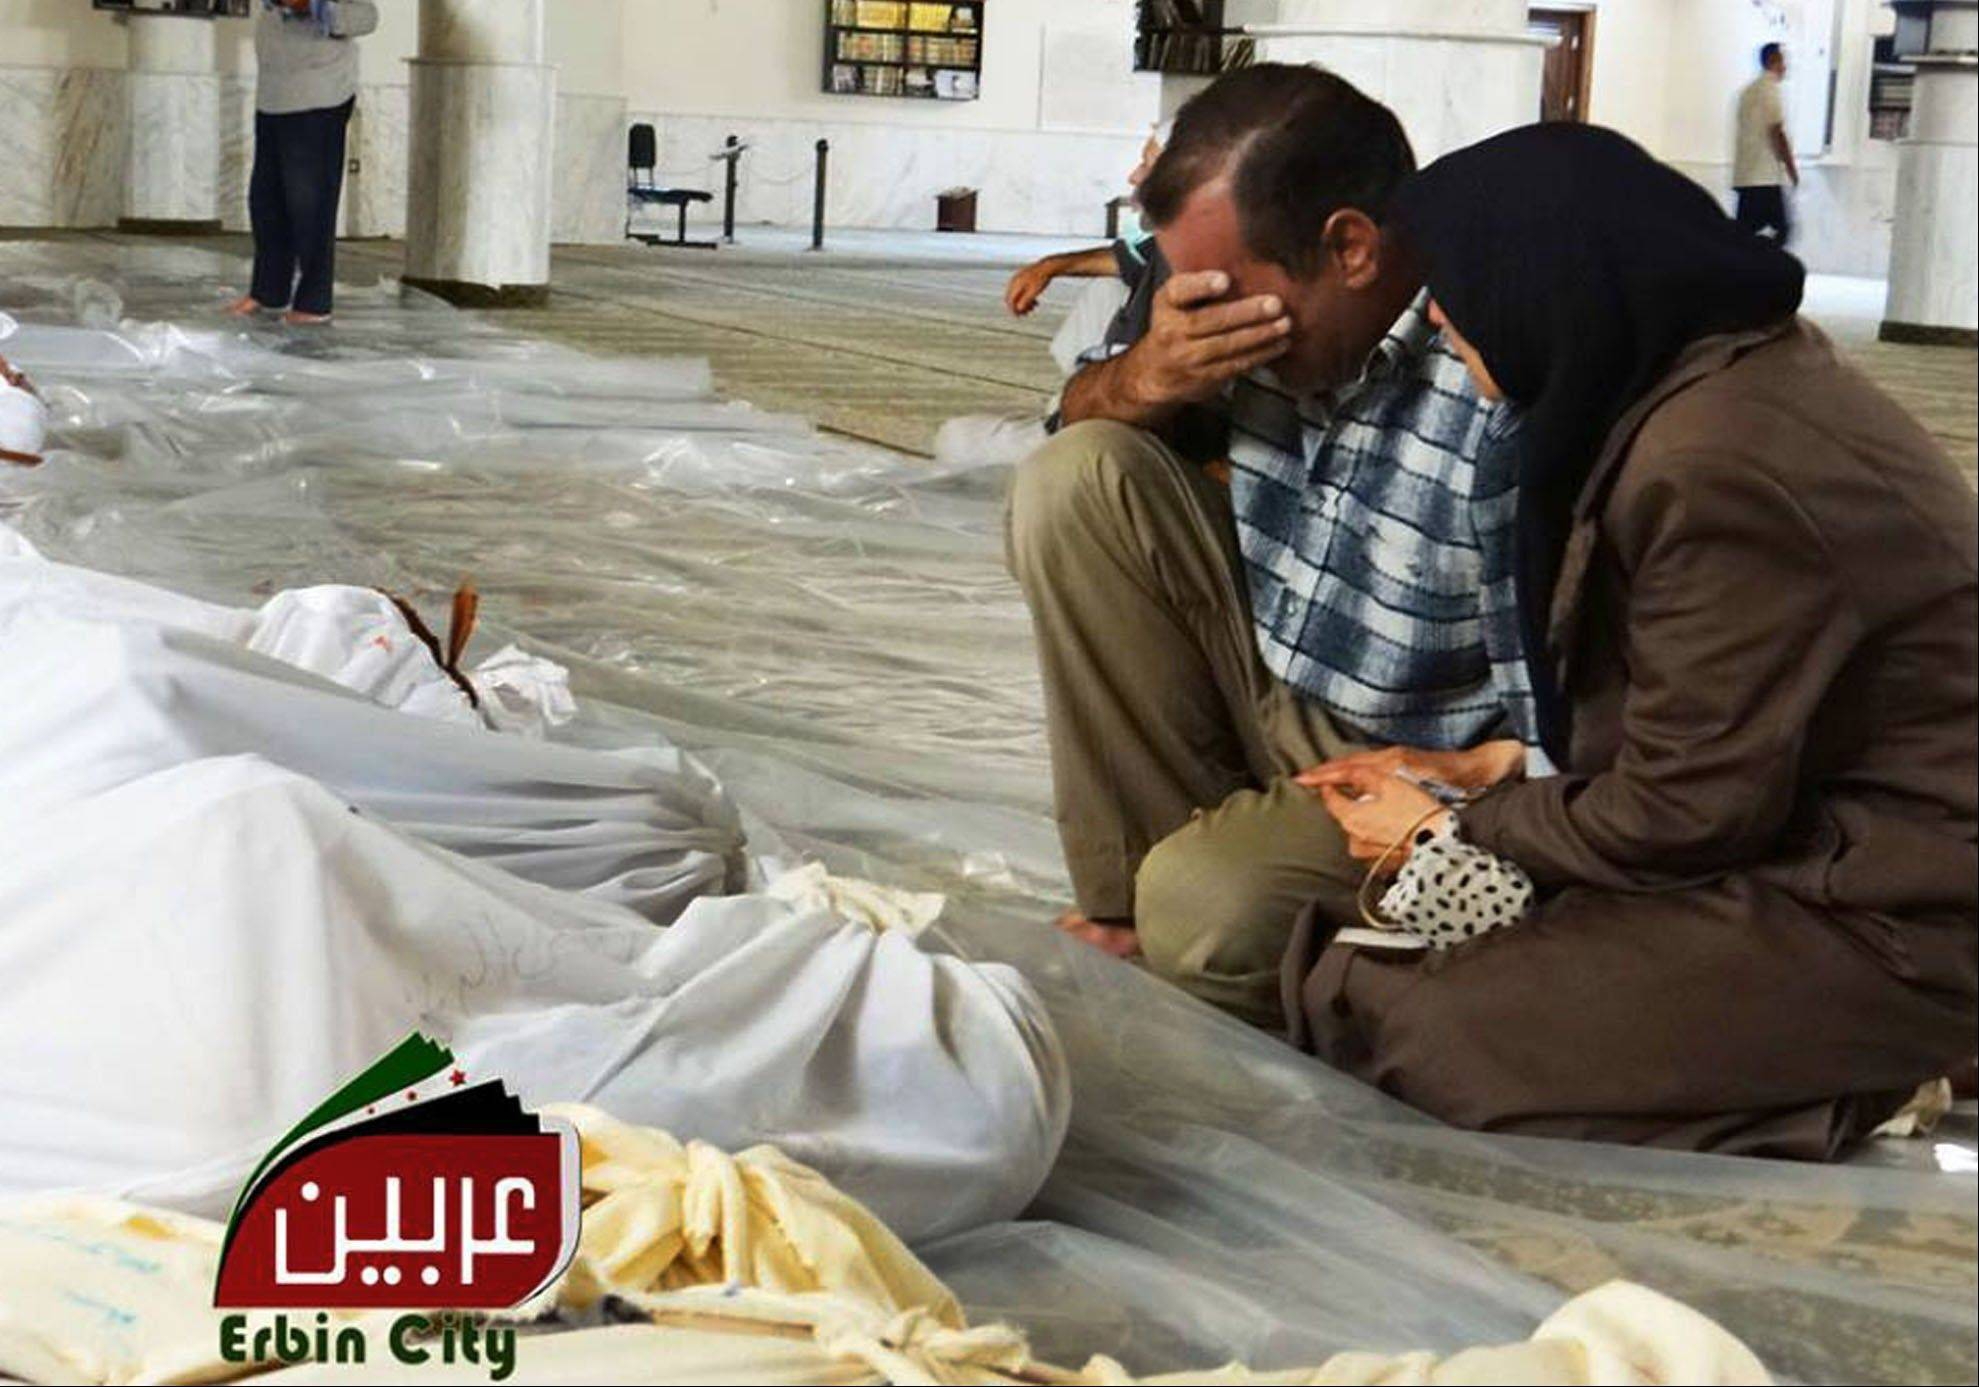 This citizen journalism image, Syrians mourn over the dead bodies, victims of an alleged poisonous gas attack fired by regime forces, according to activists Wednesday.